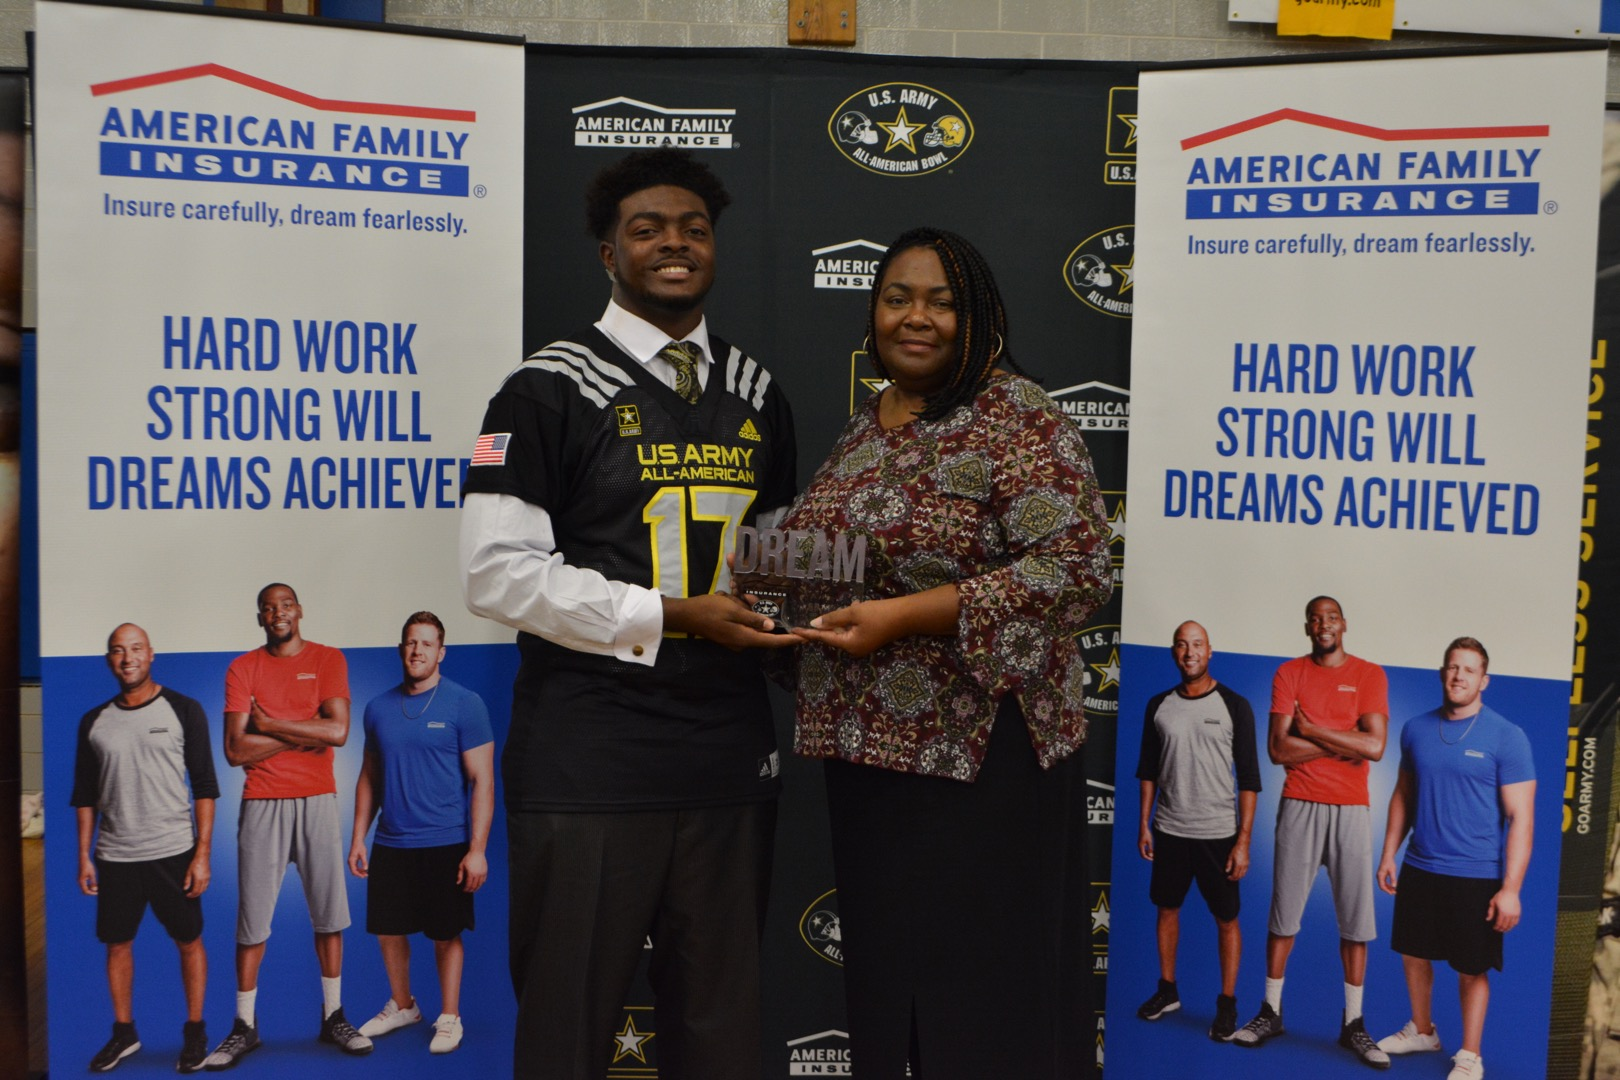 Deron Irving-Bey presented his mom, Dionne Irving-Bay, with the Dream Champion Award. (Photo: AAG)